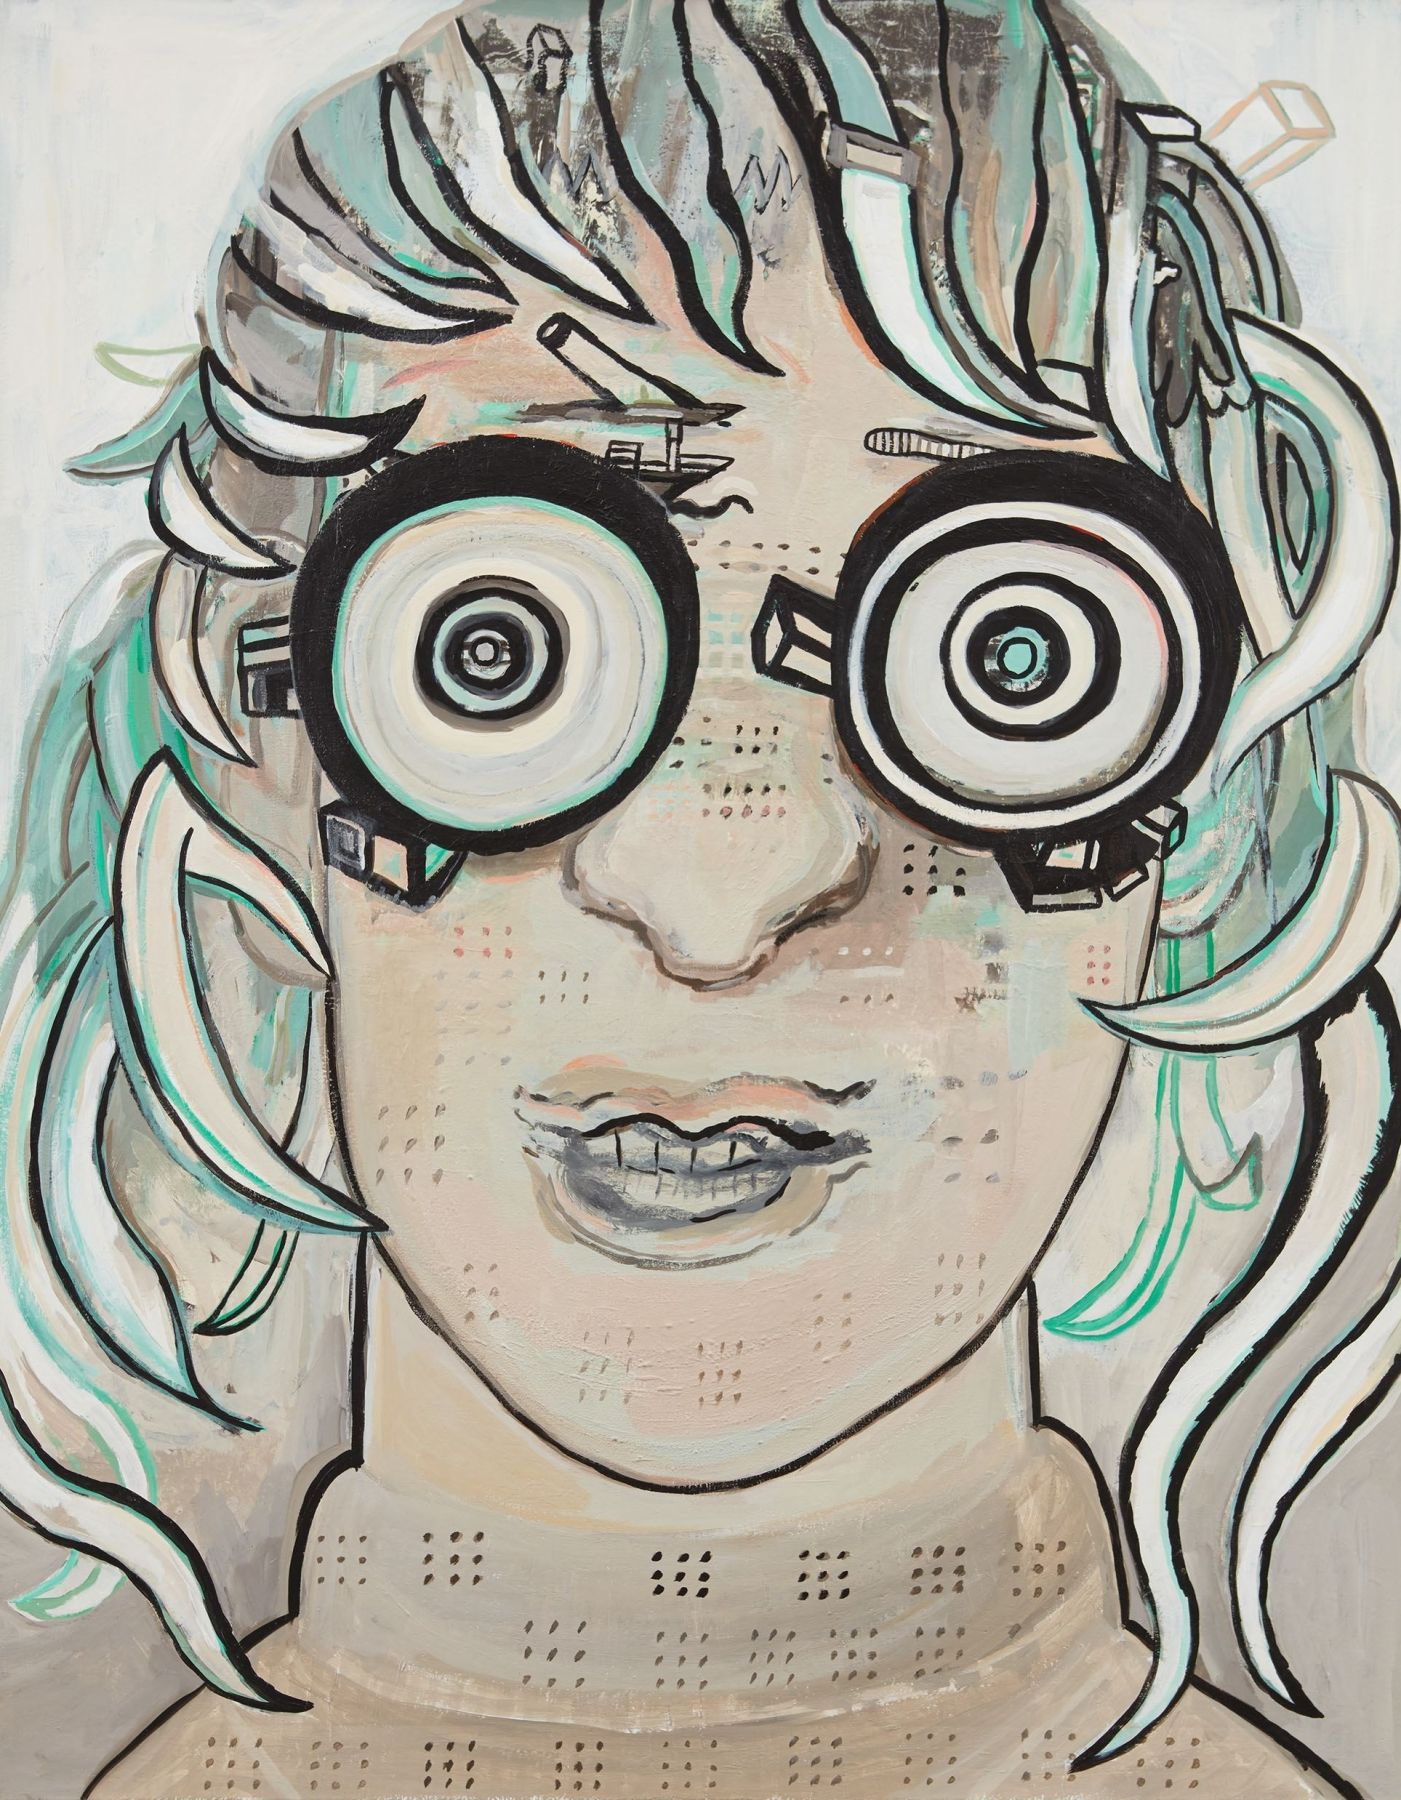 girl with large eyes by hannah van bart